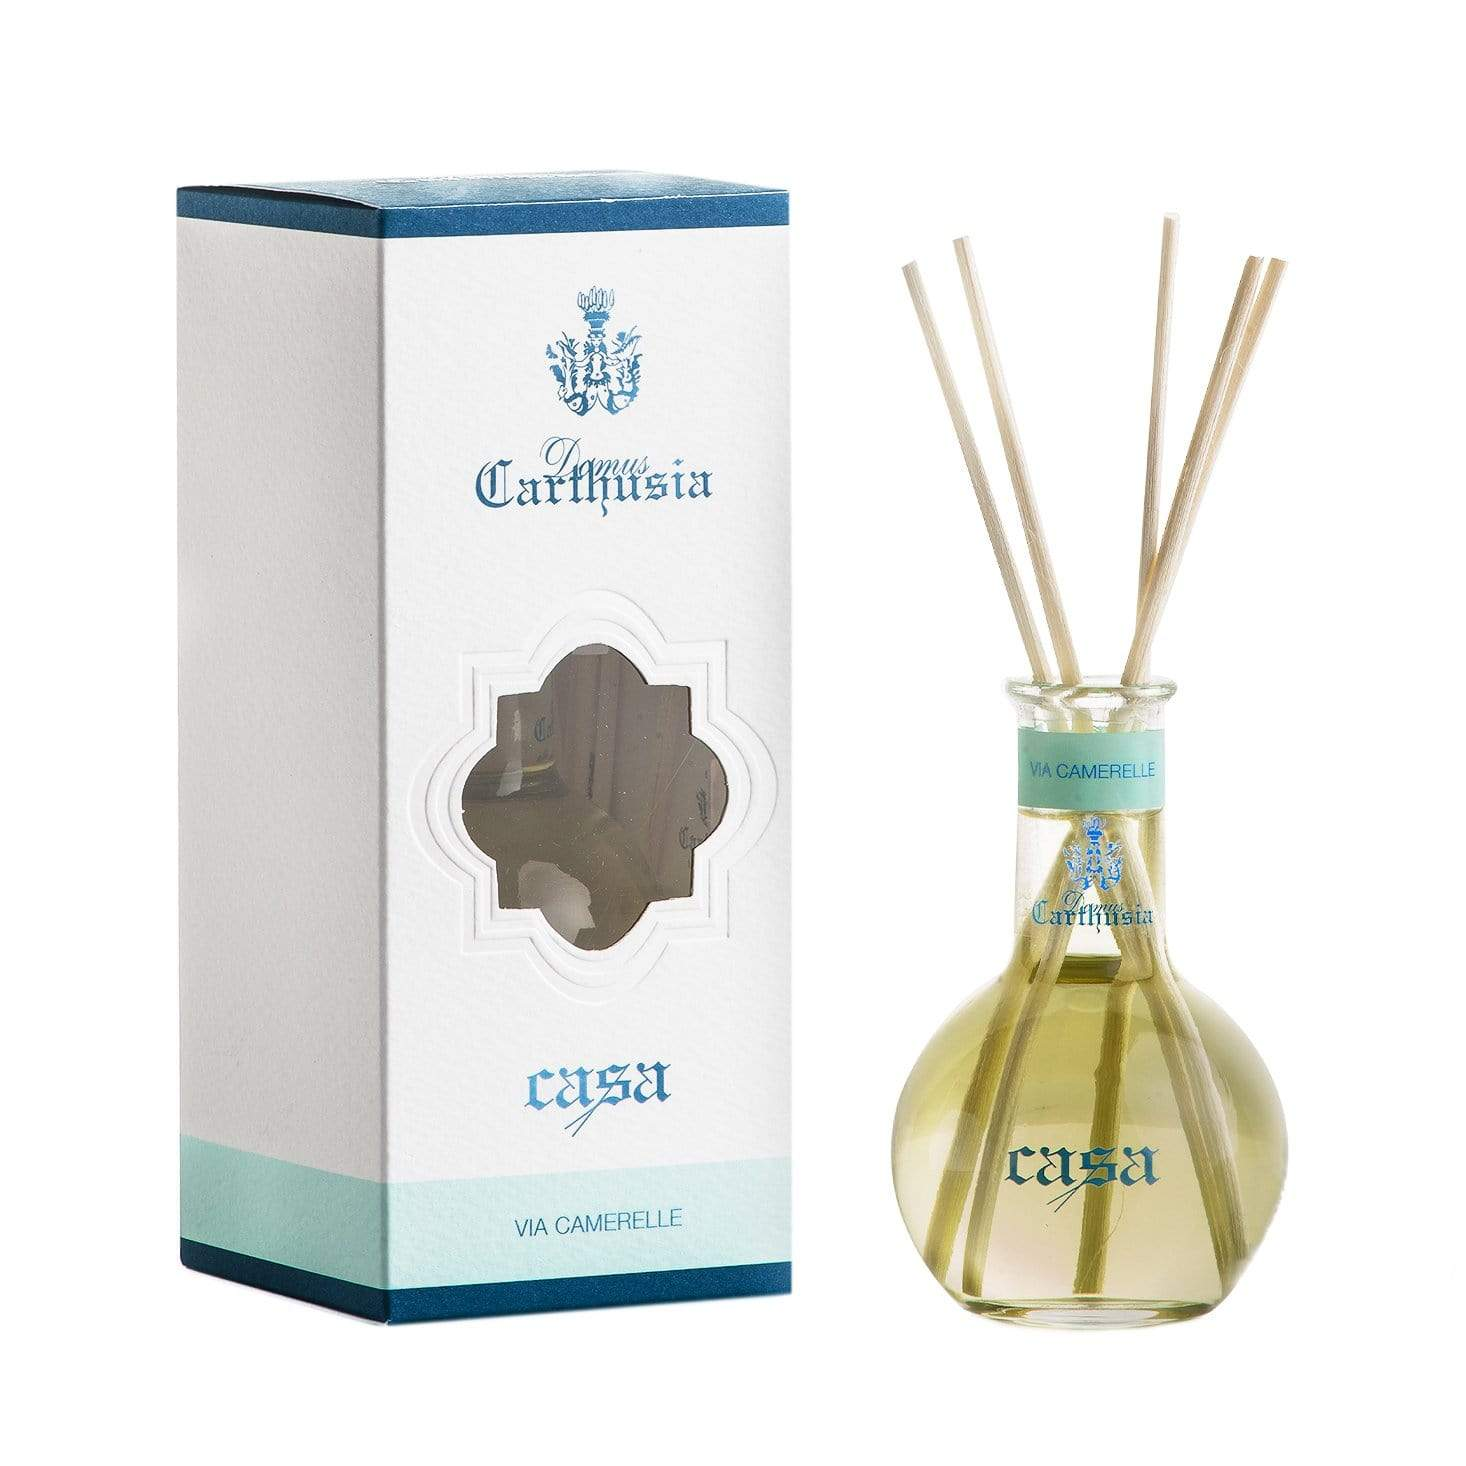 CARTHUSIA Via Camerelle Diffuser - 100ml